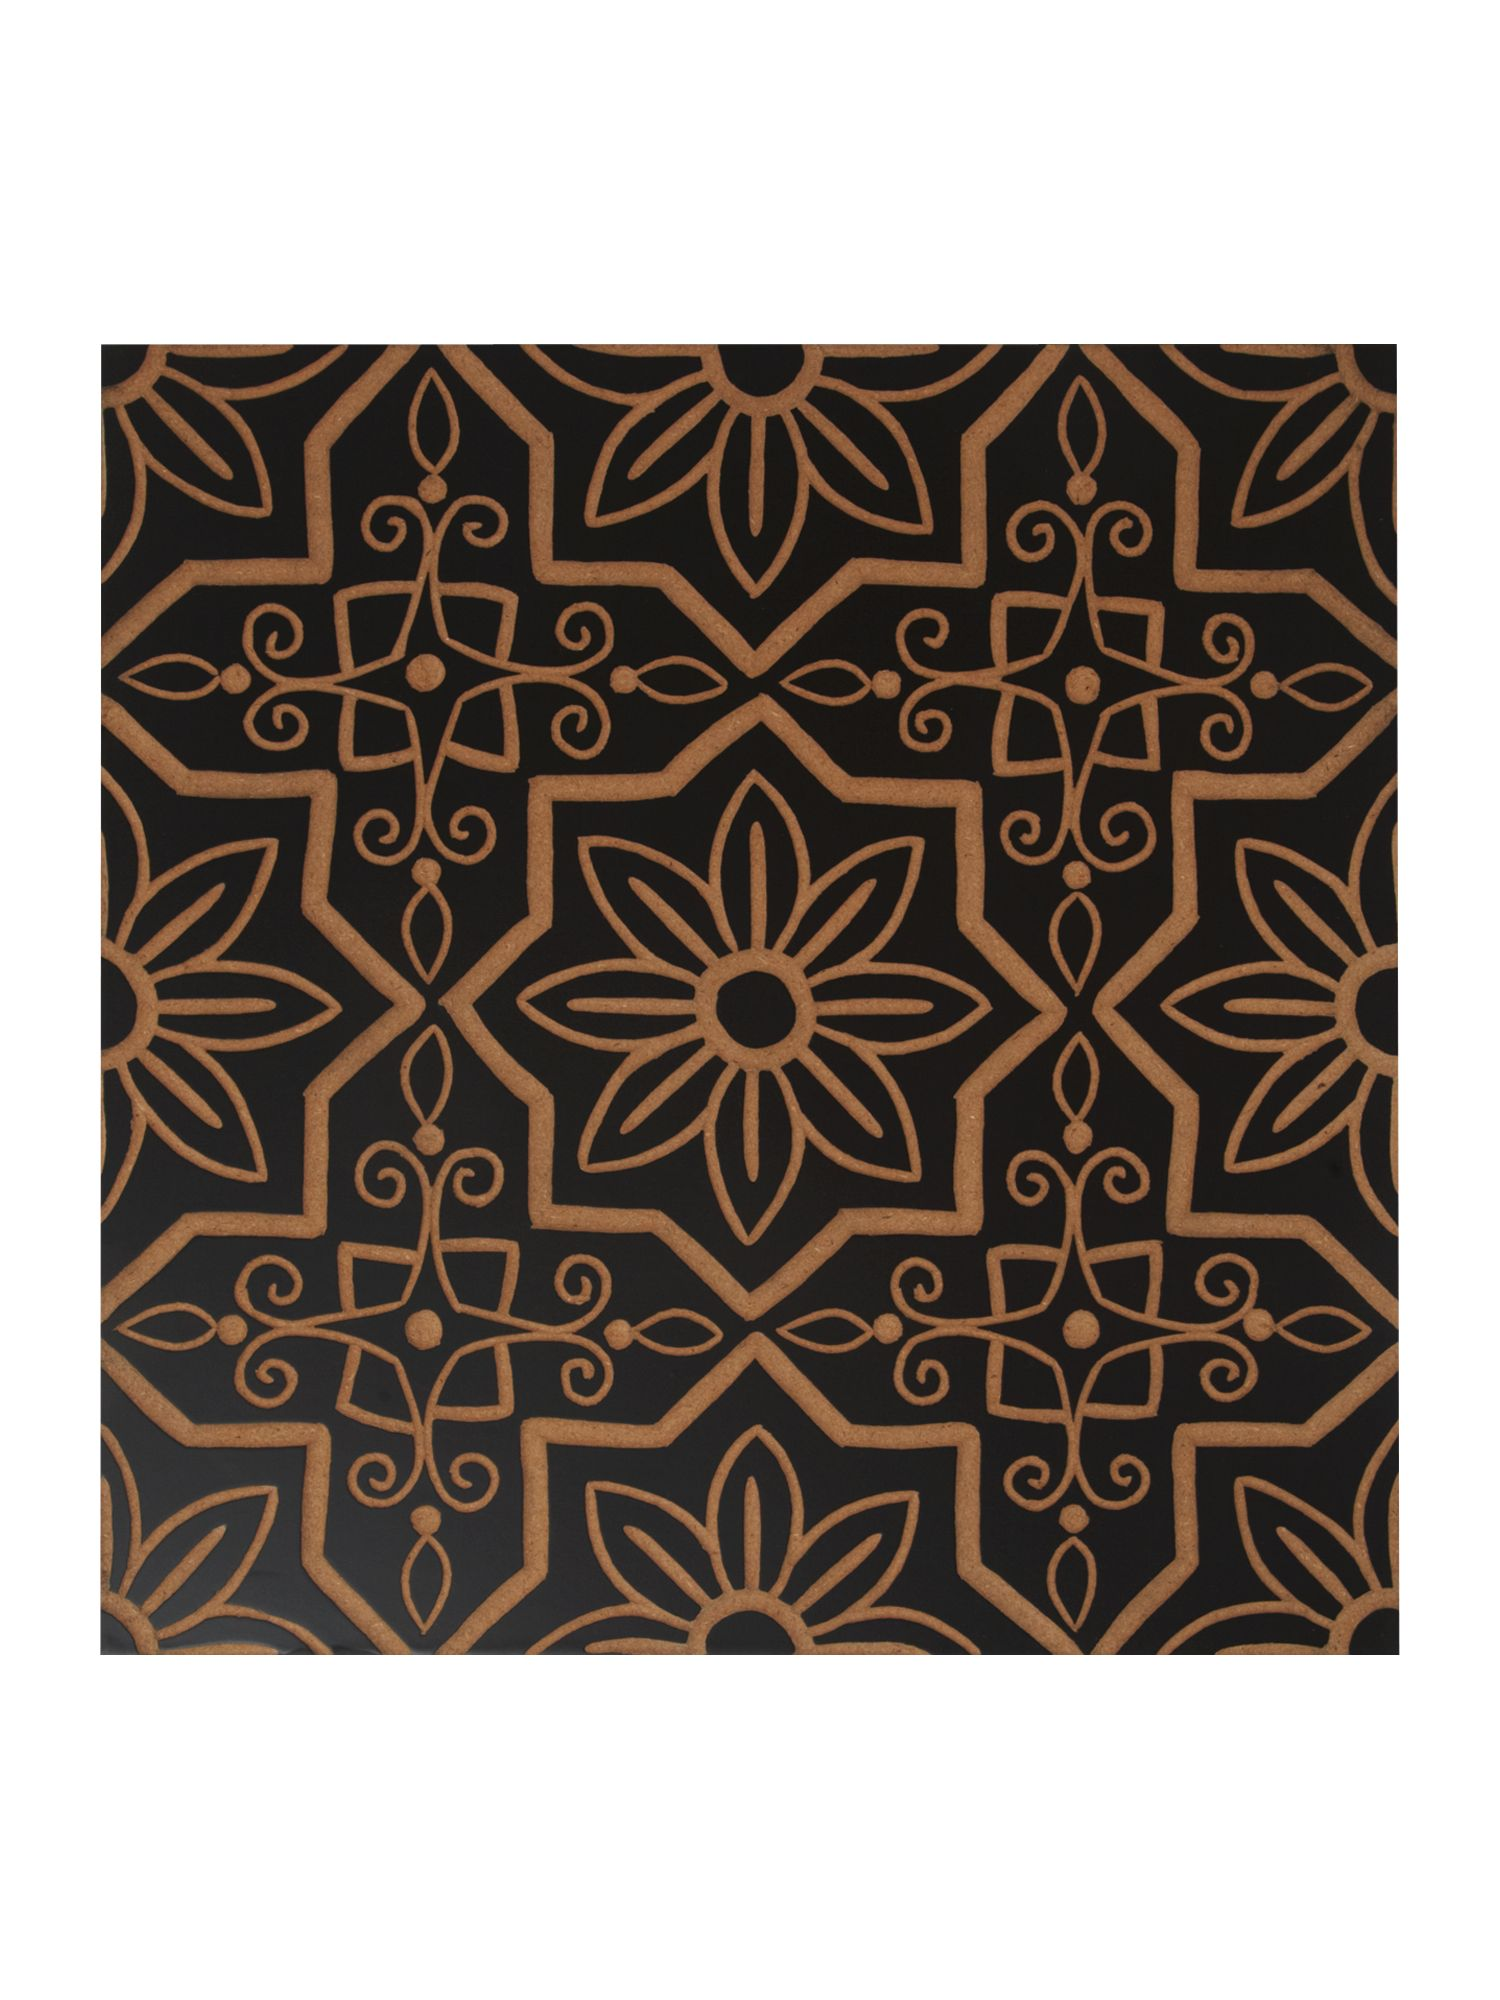 Carved wooden wall art tile